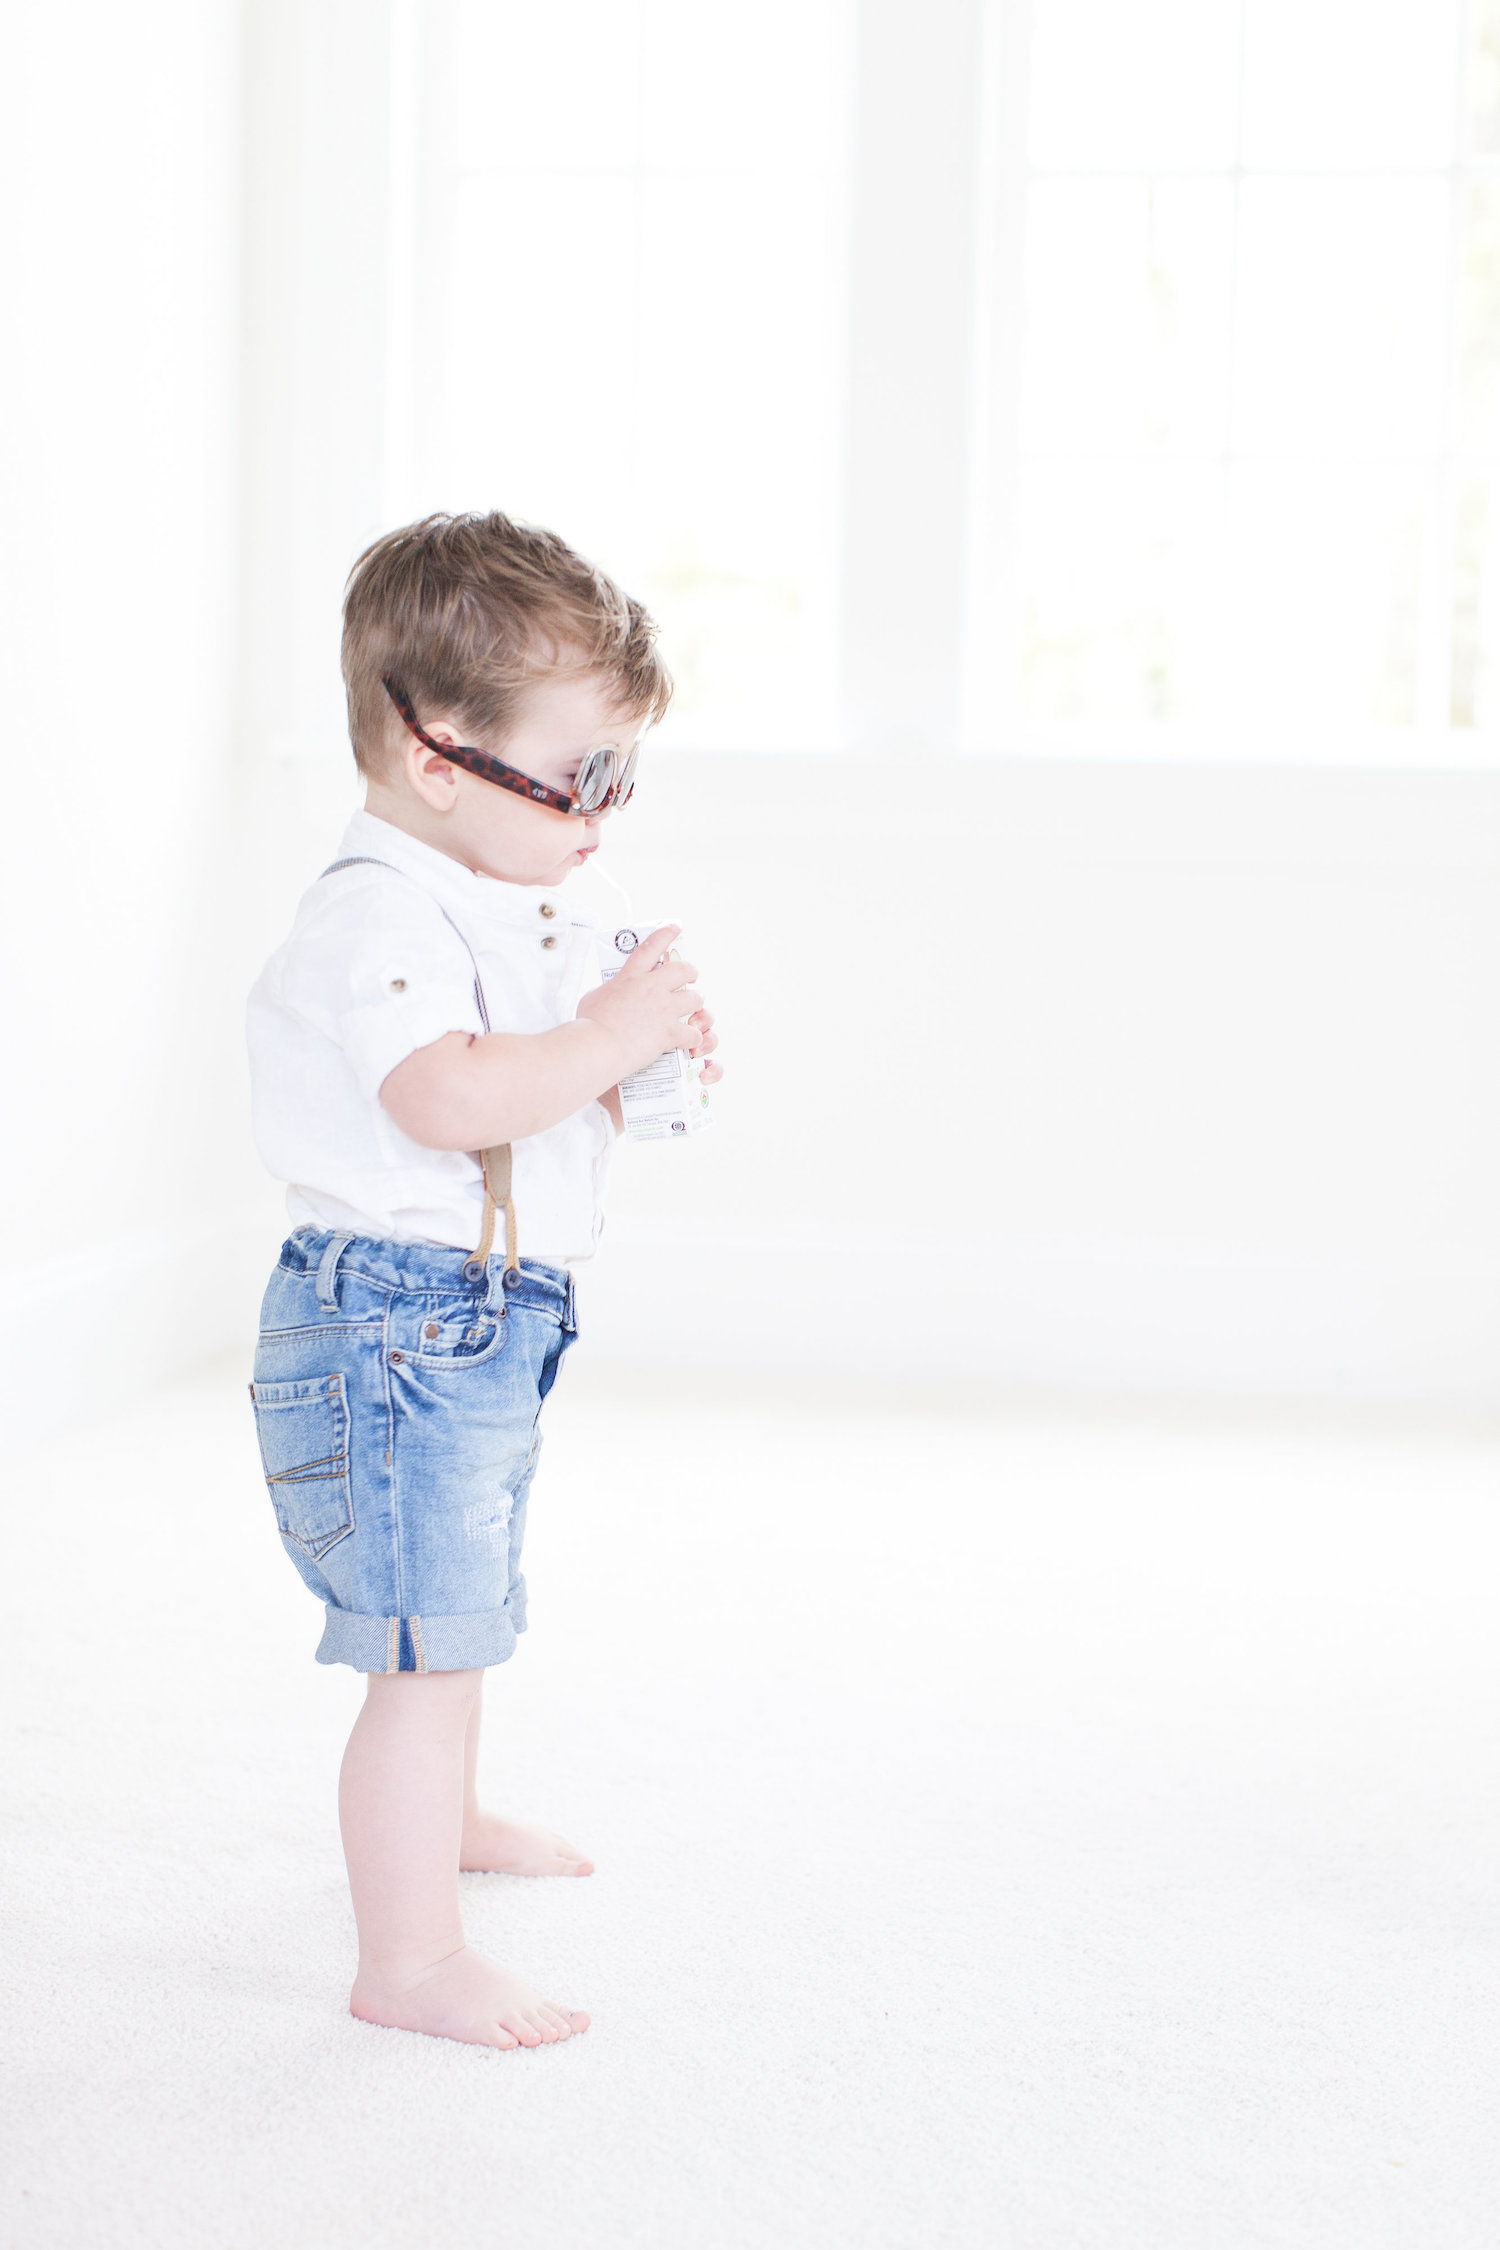 H&M Kids Spring Fashion Monika Hibbs baby boy sunglasses